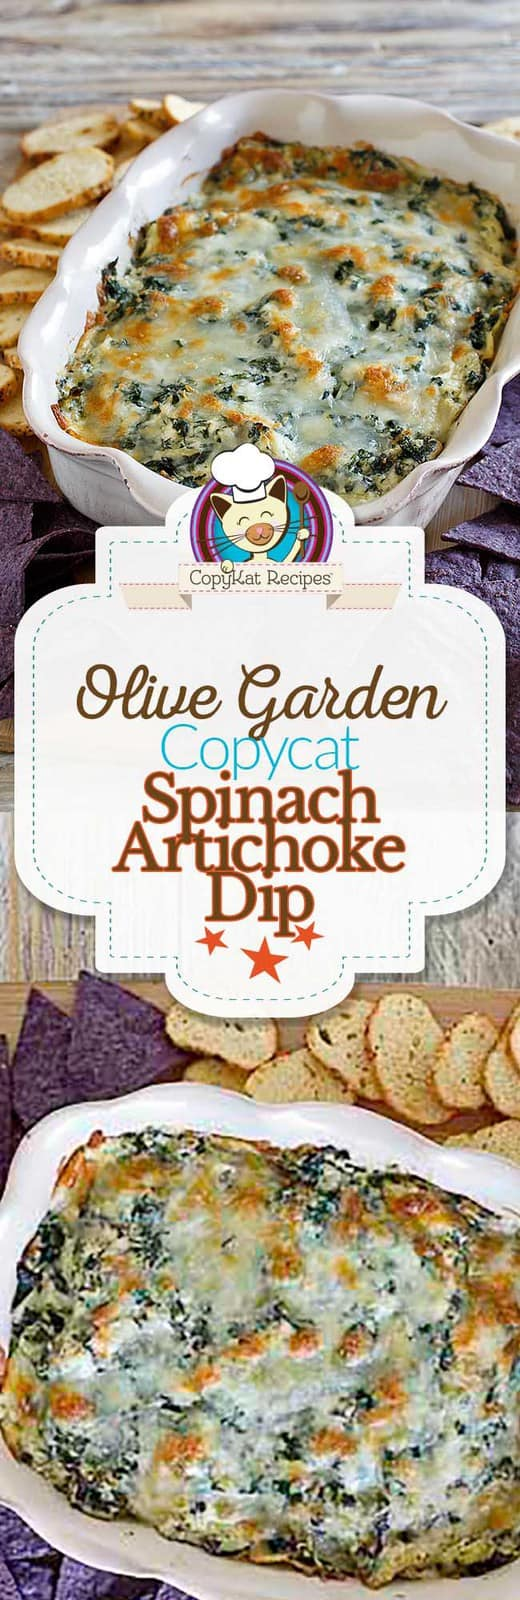 You can recreate the Olive Garden Spinach-Artichoke Dip at home with this easy copycat recipe. #Olivegarden #appetizer #artichoke #copycat #copycatrecipe